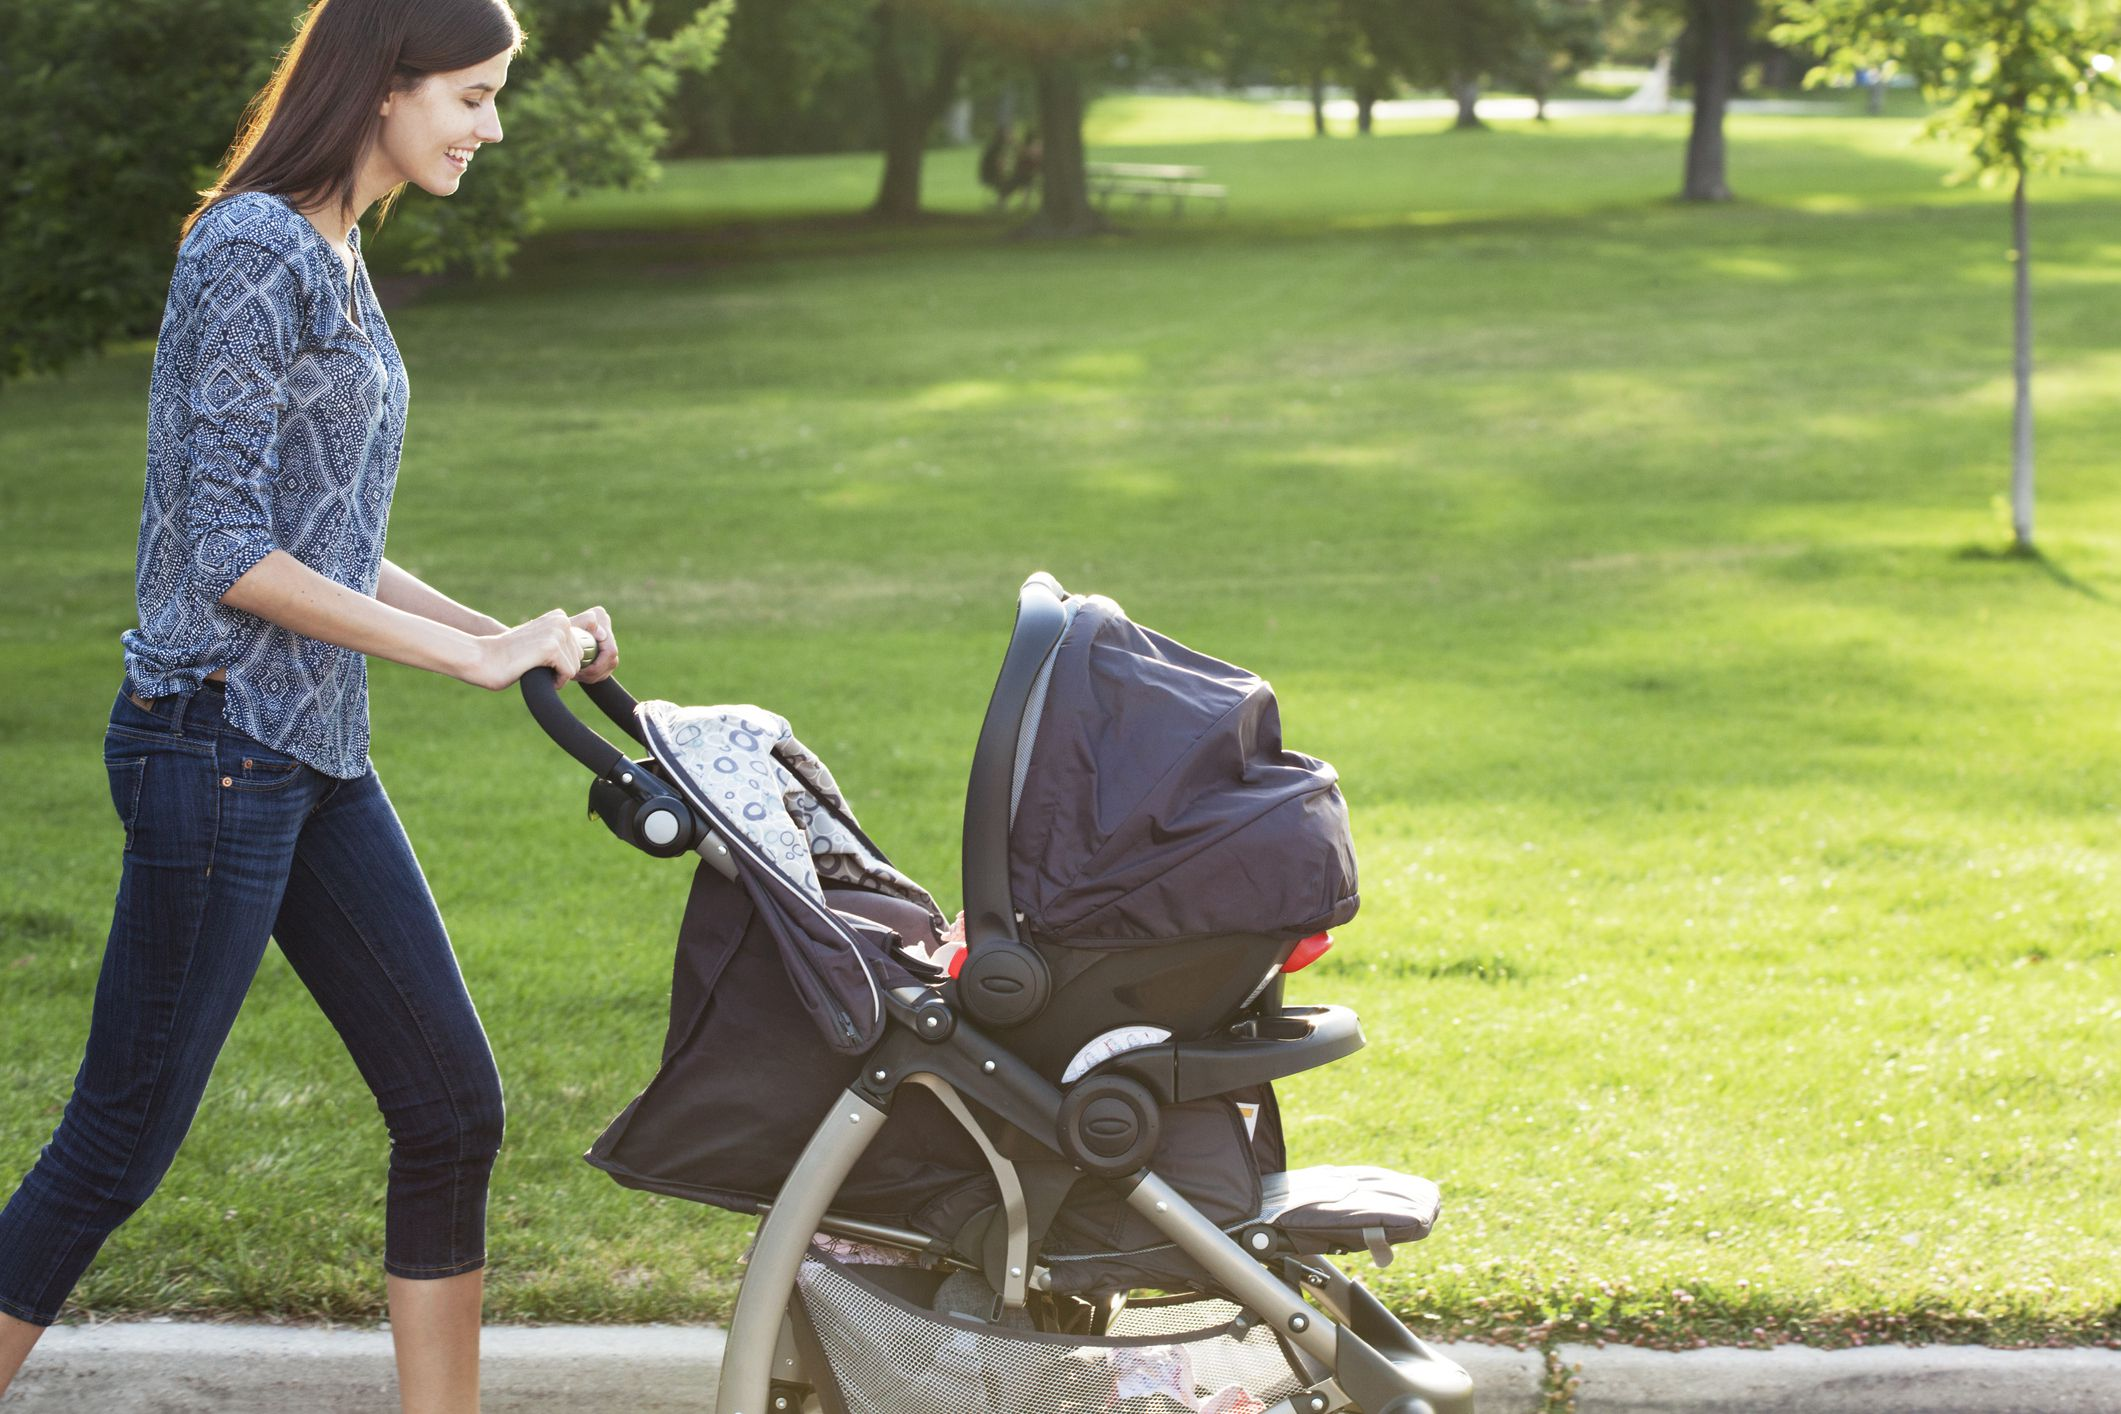 Baby Stroller Best The 8 Best Stroller And Car Seat Combos Of 2019